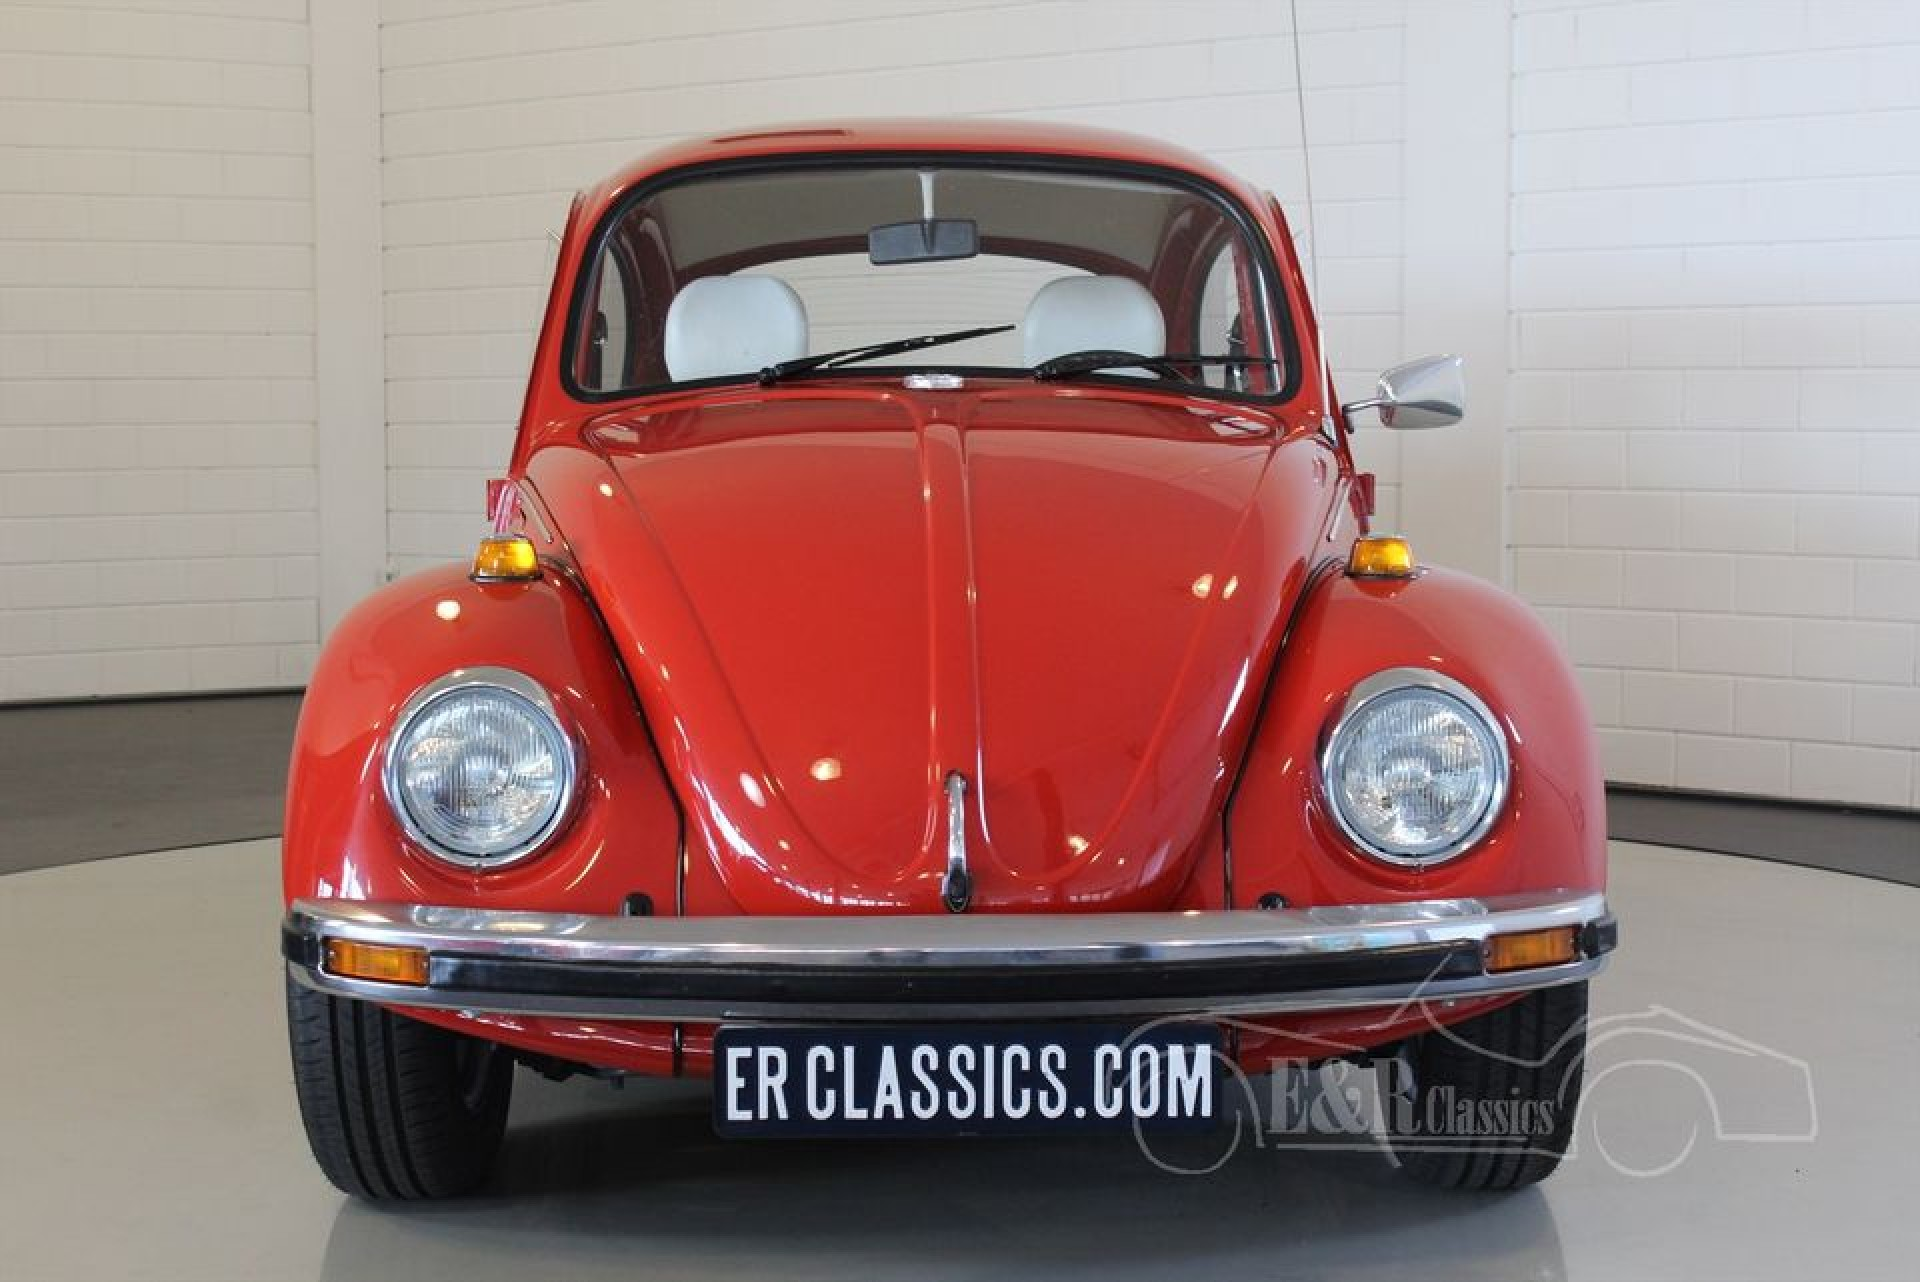 volkswagen coccinelle 1976 vendre erclassics. Black Bedroom Furniture Sets. Home Design Ideas